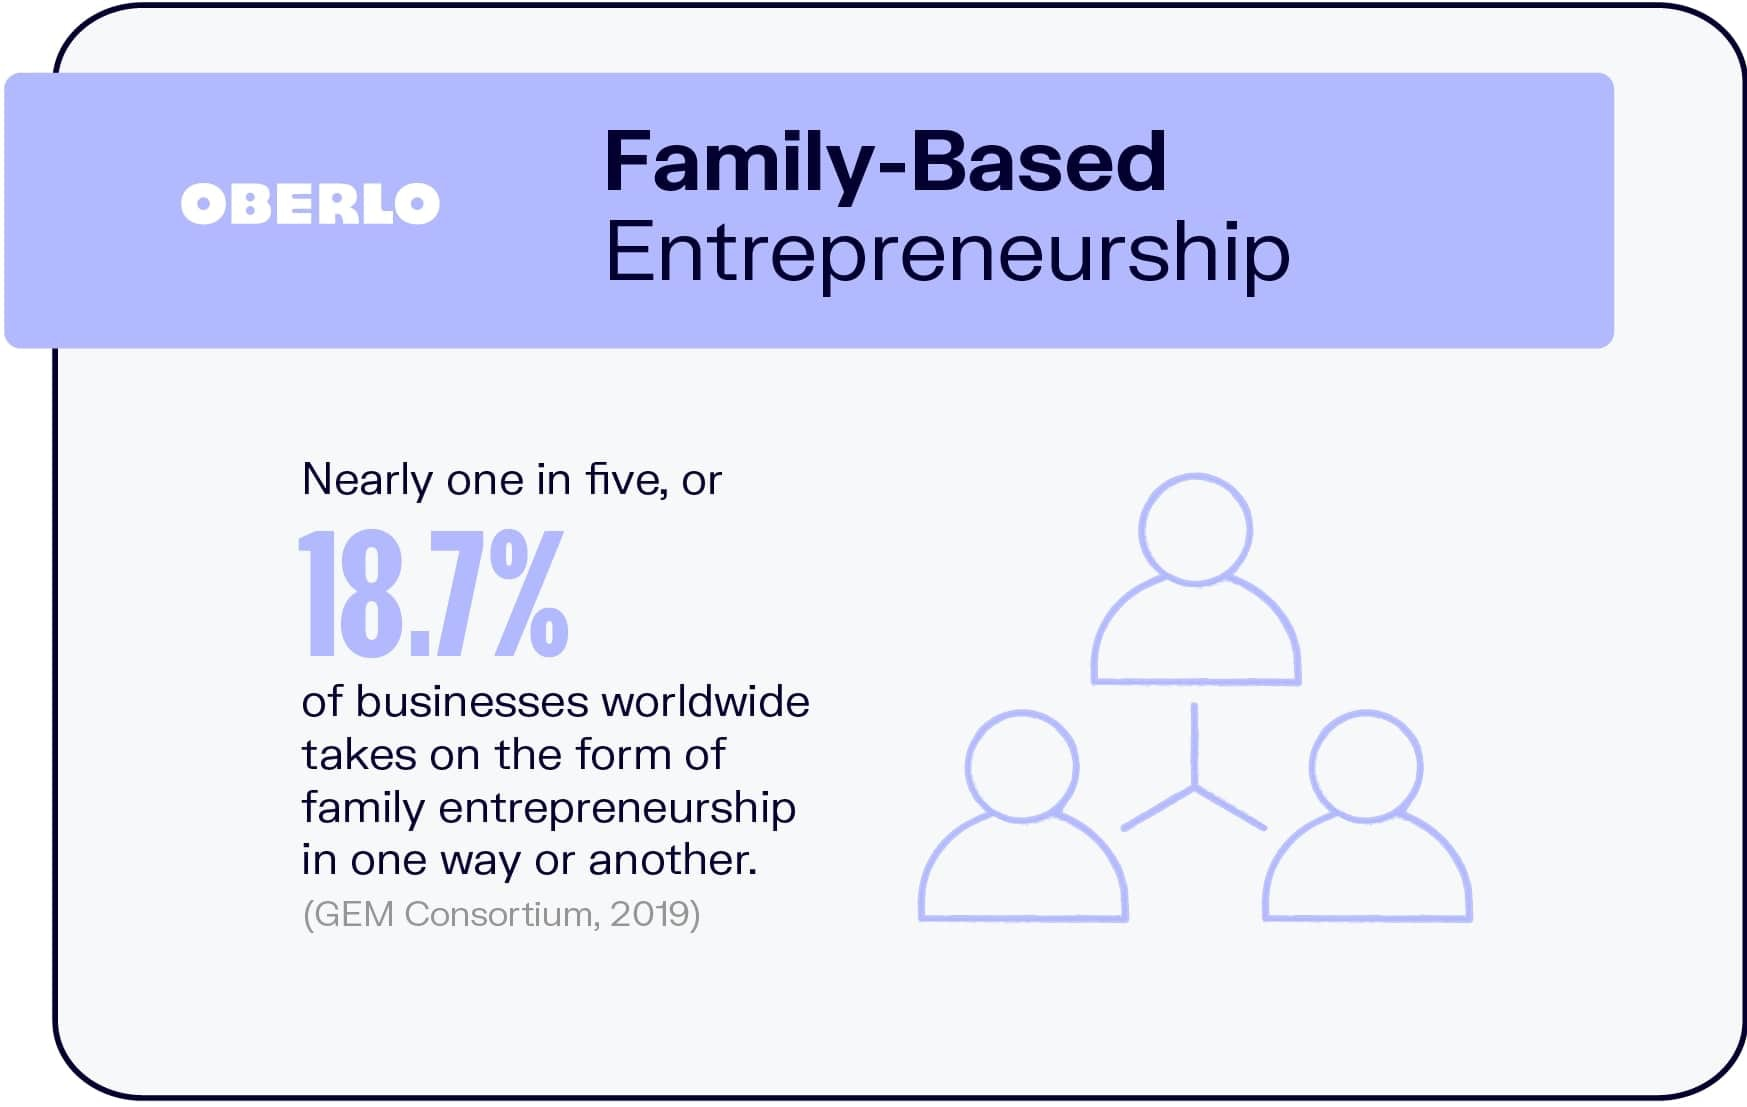 Family-Based Entrepreneurship